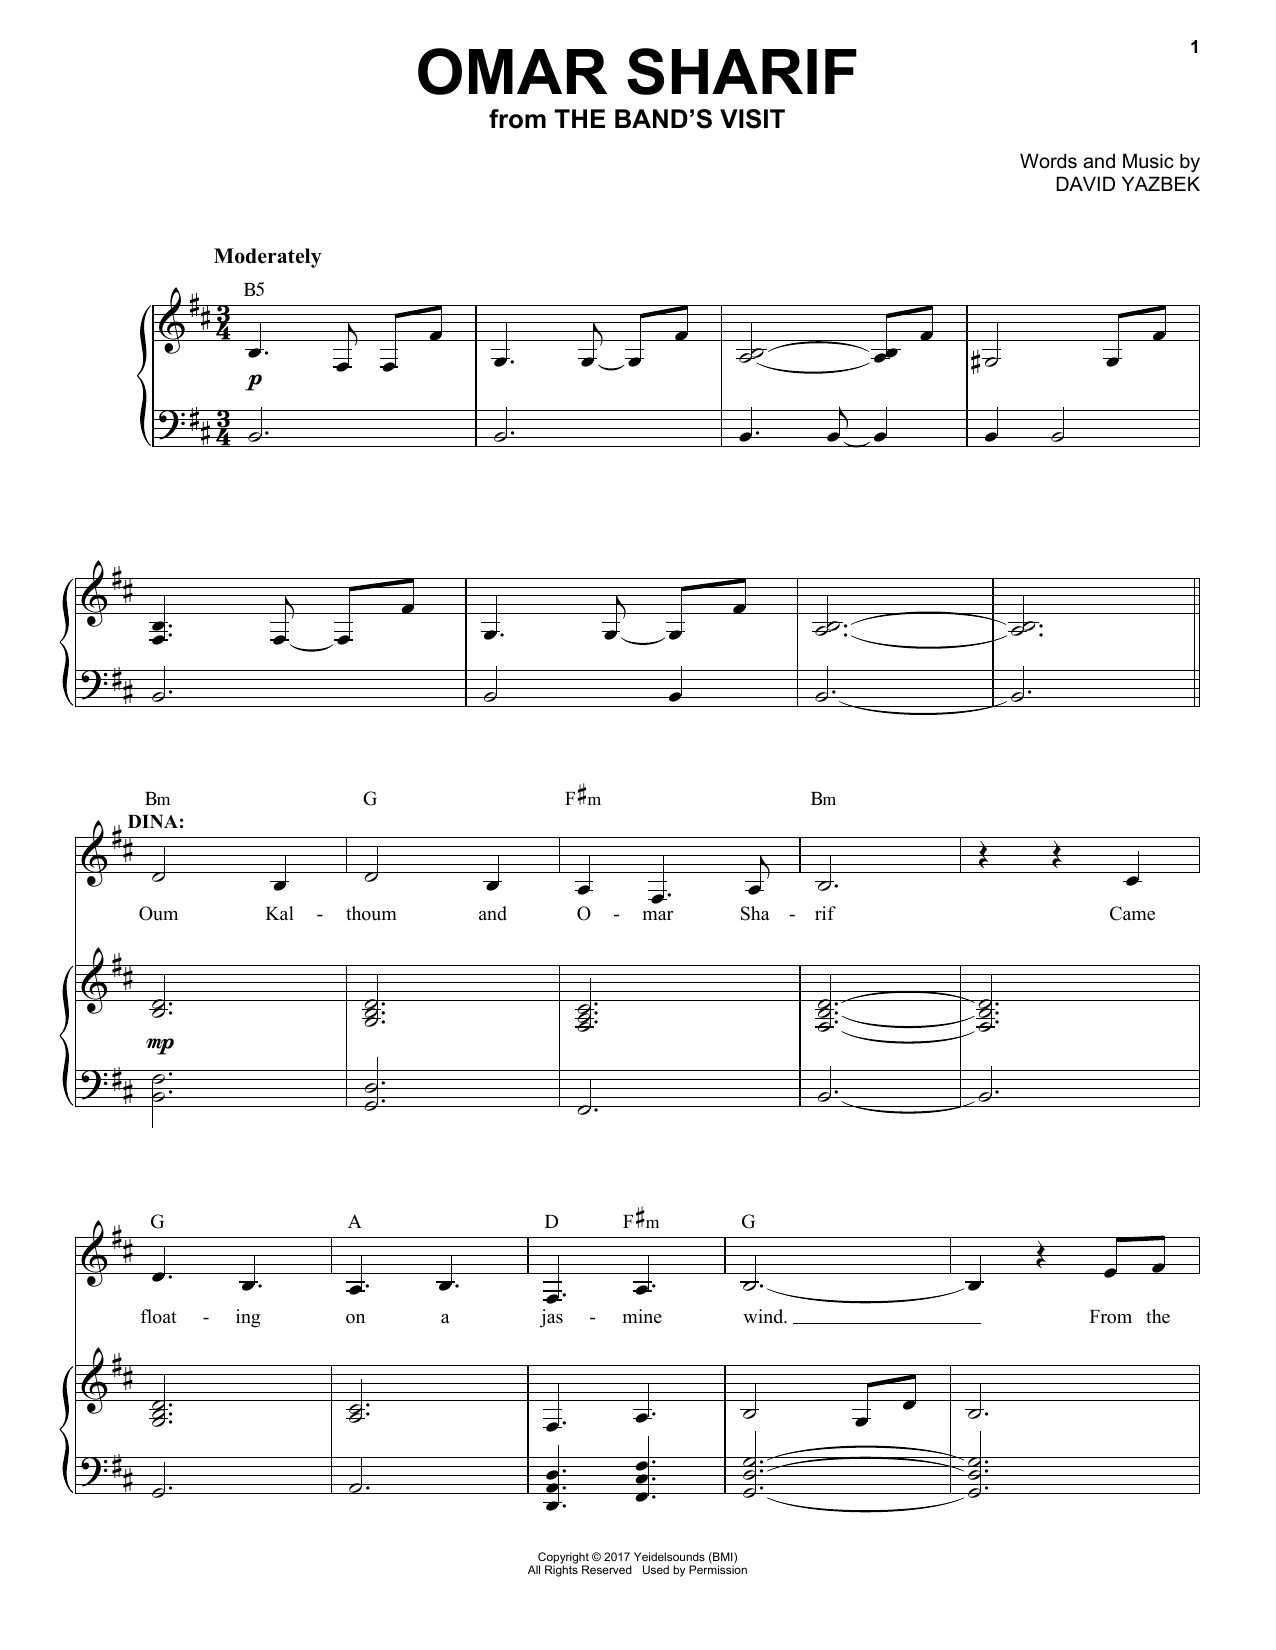 Sheet Music Digital Files To Print - Licensed David Yazbek Digital